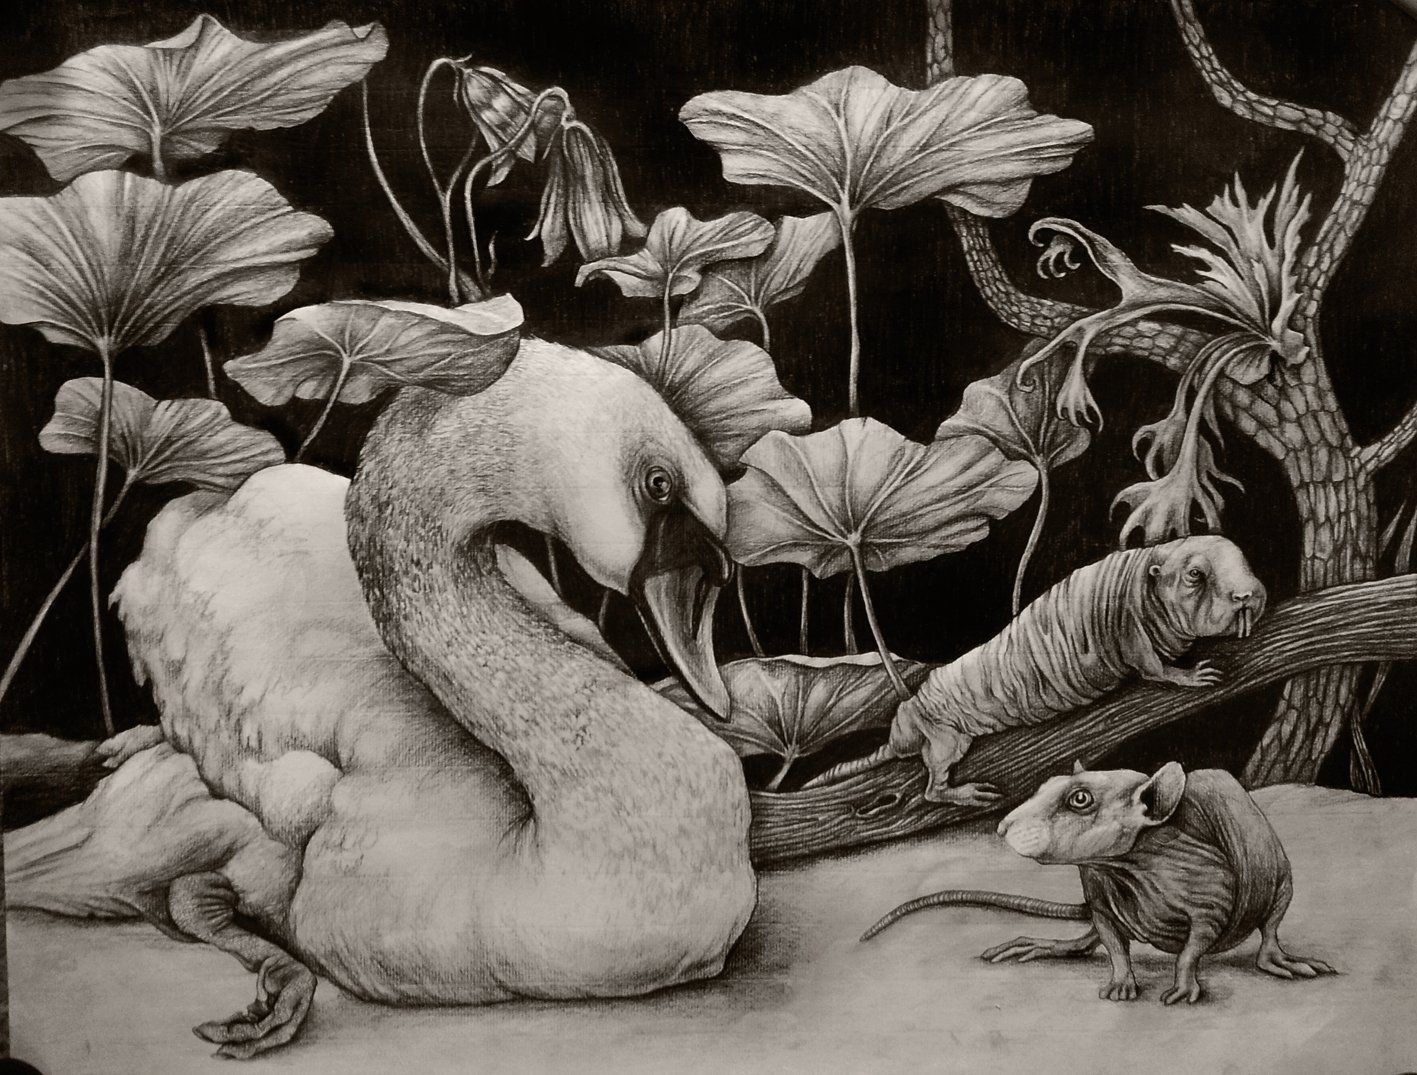 Swan and naked rats 70x50cm